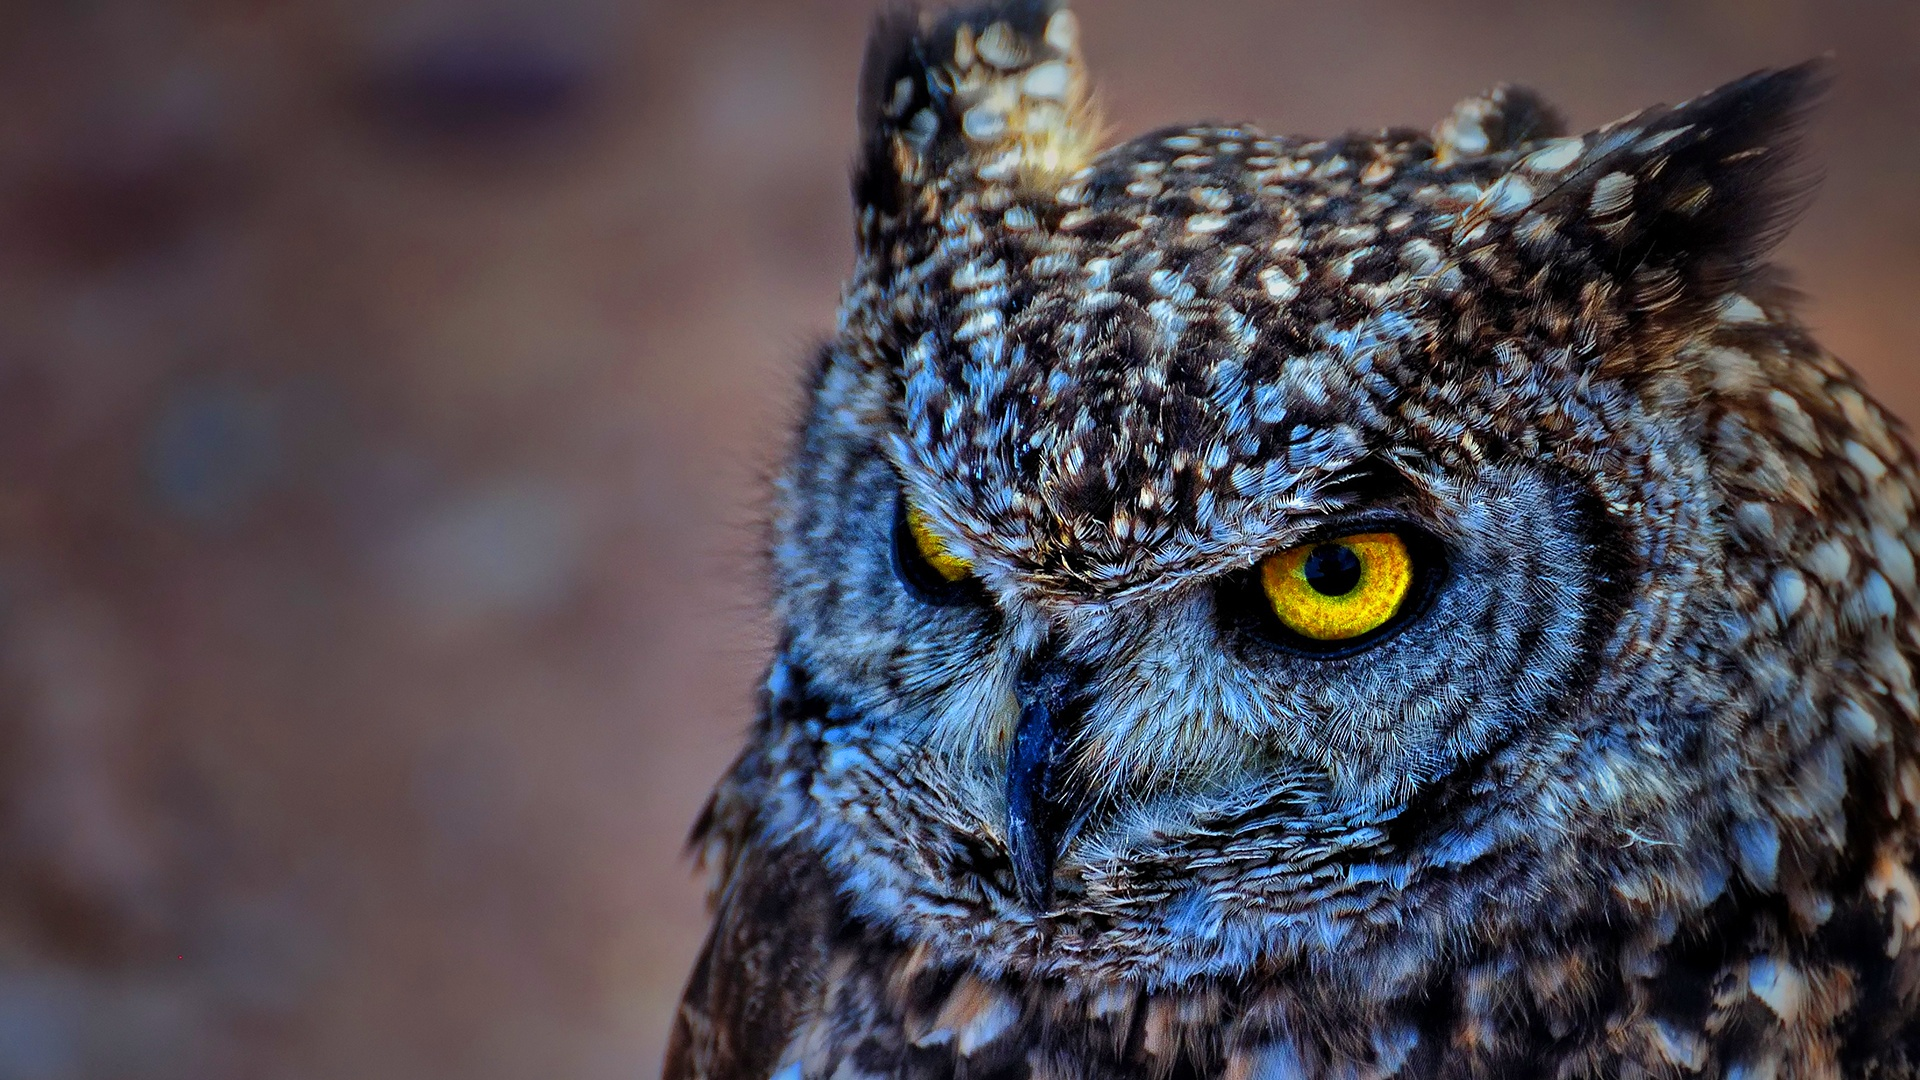 spotted-eagle-owl-wallpaper-hd-backgrounds-1920x1080 | wallpaper.wiki